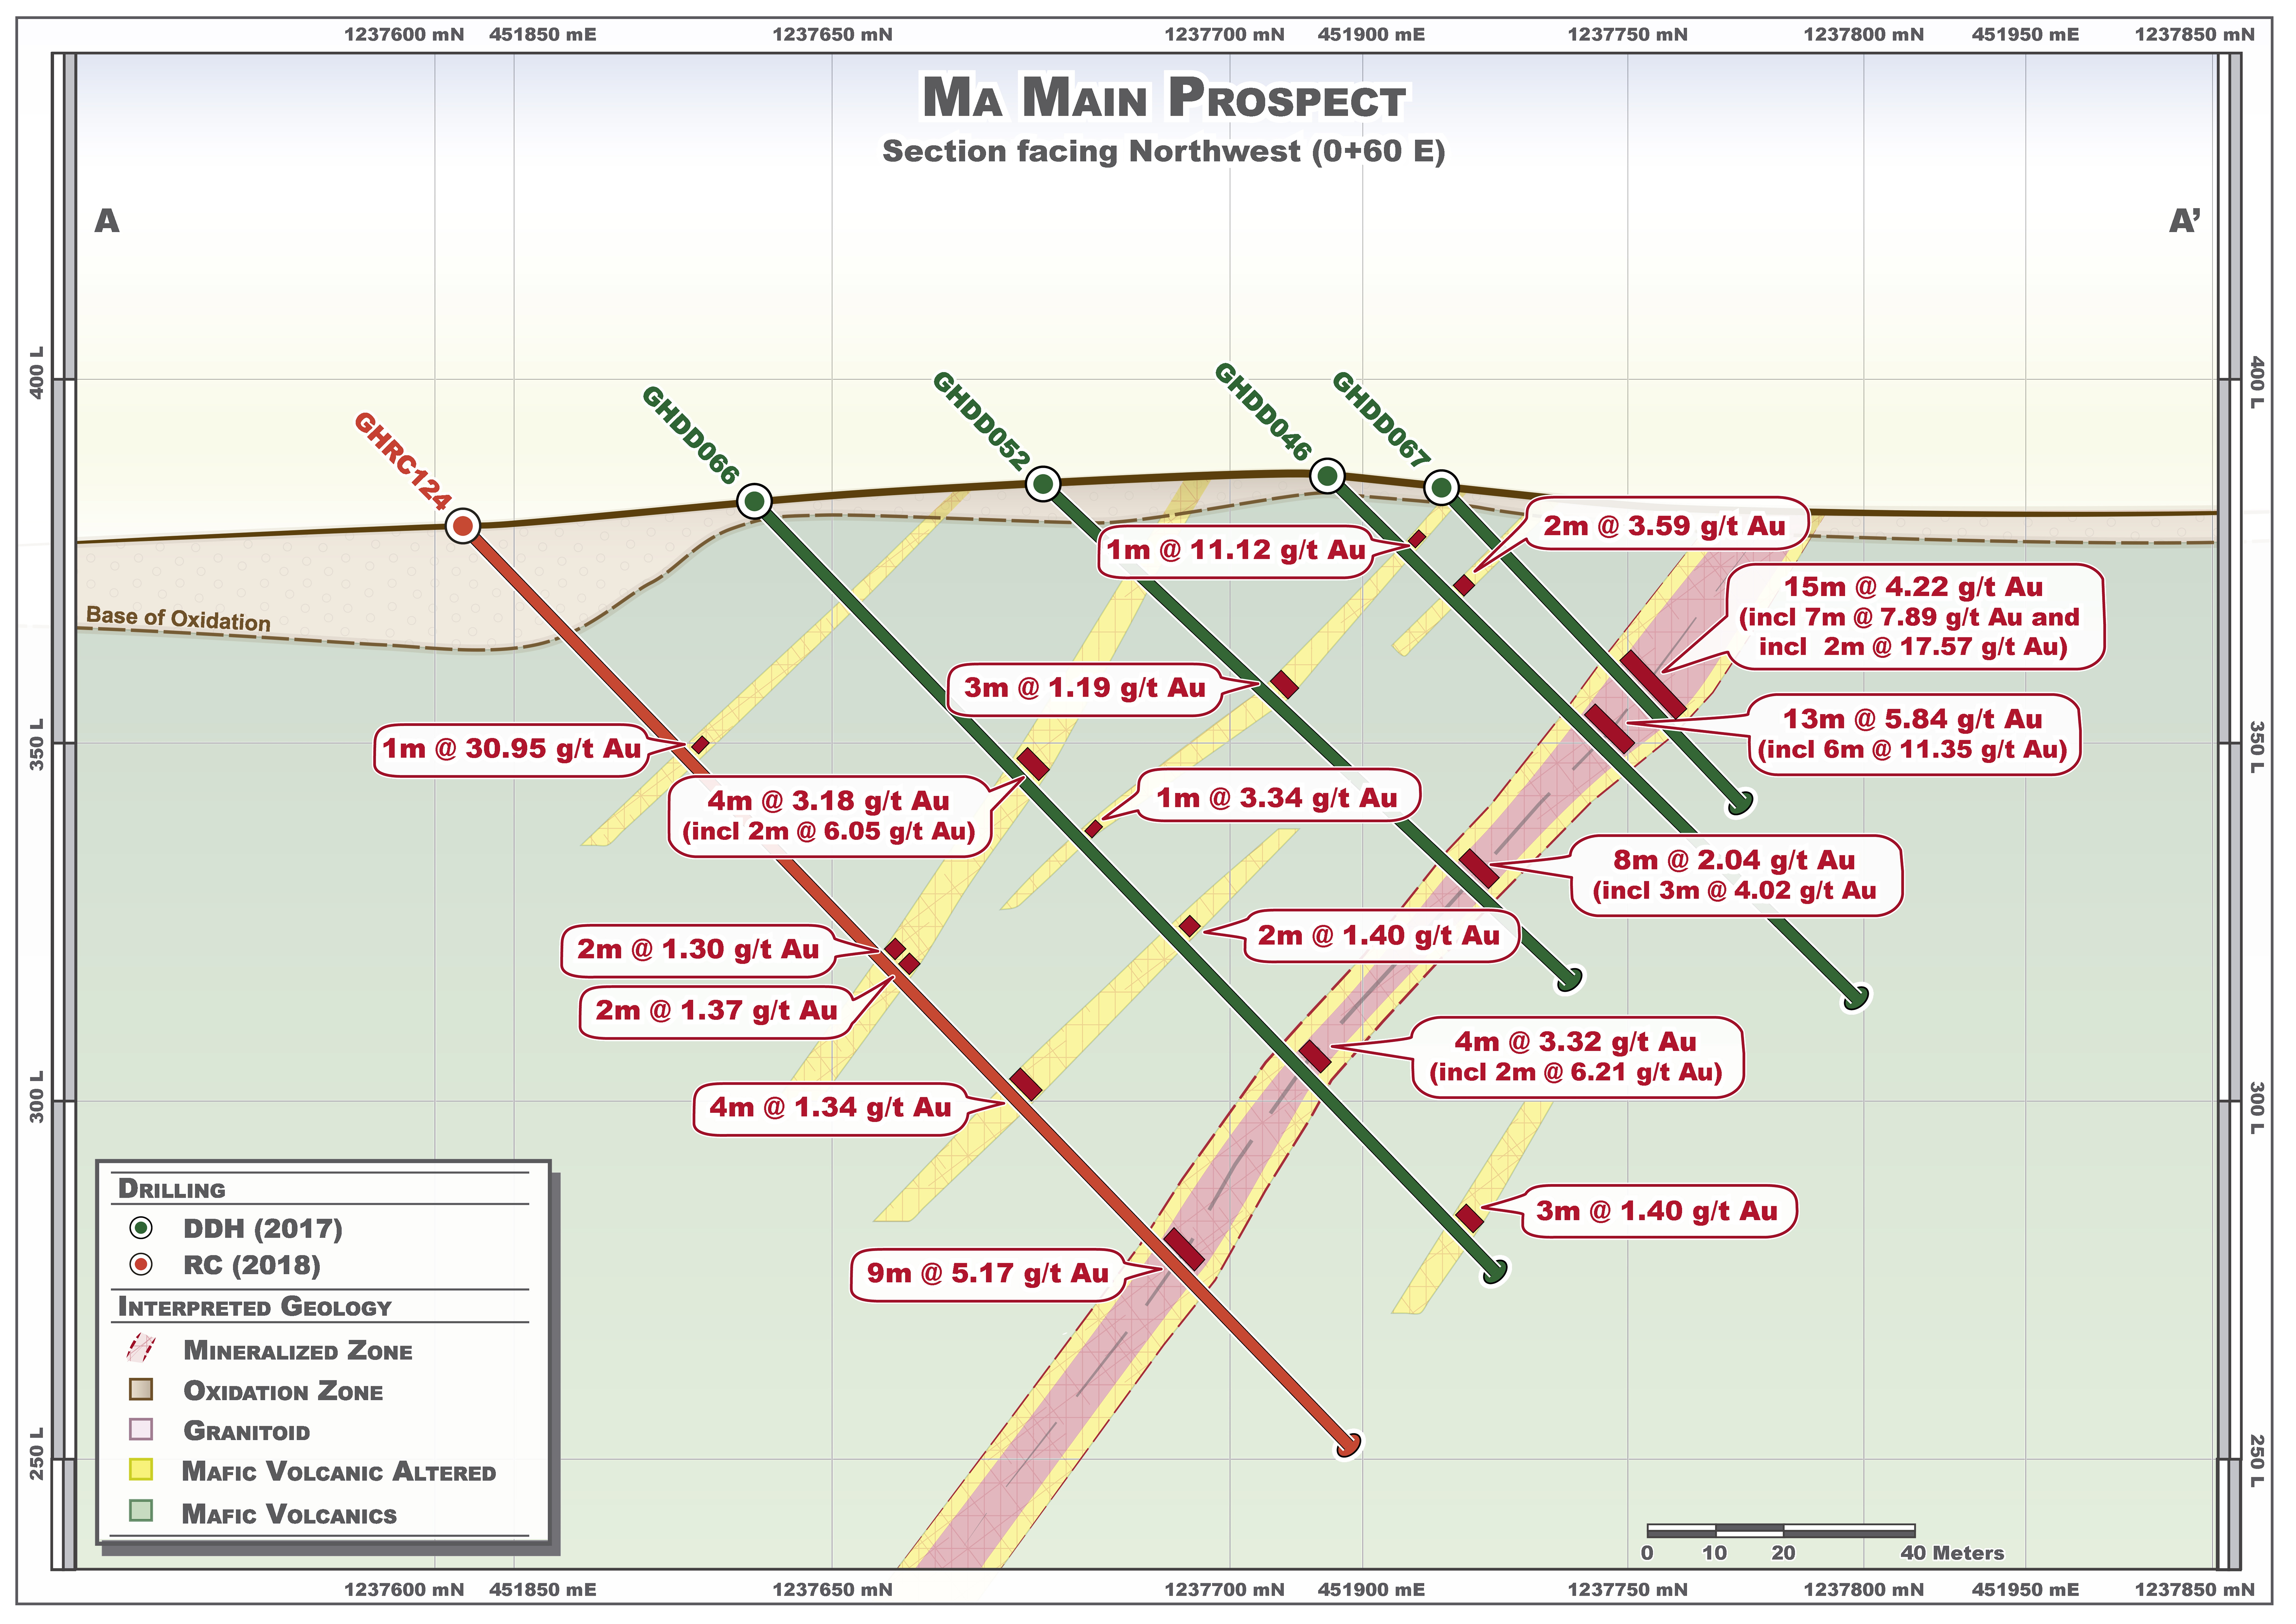 Figure 3 Ma Main Prospect - Representative Drill Section (A-A' 0+60 E)